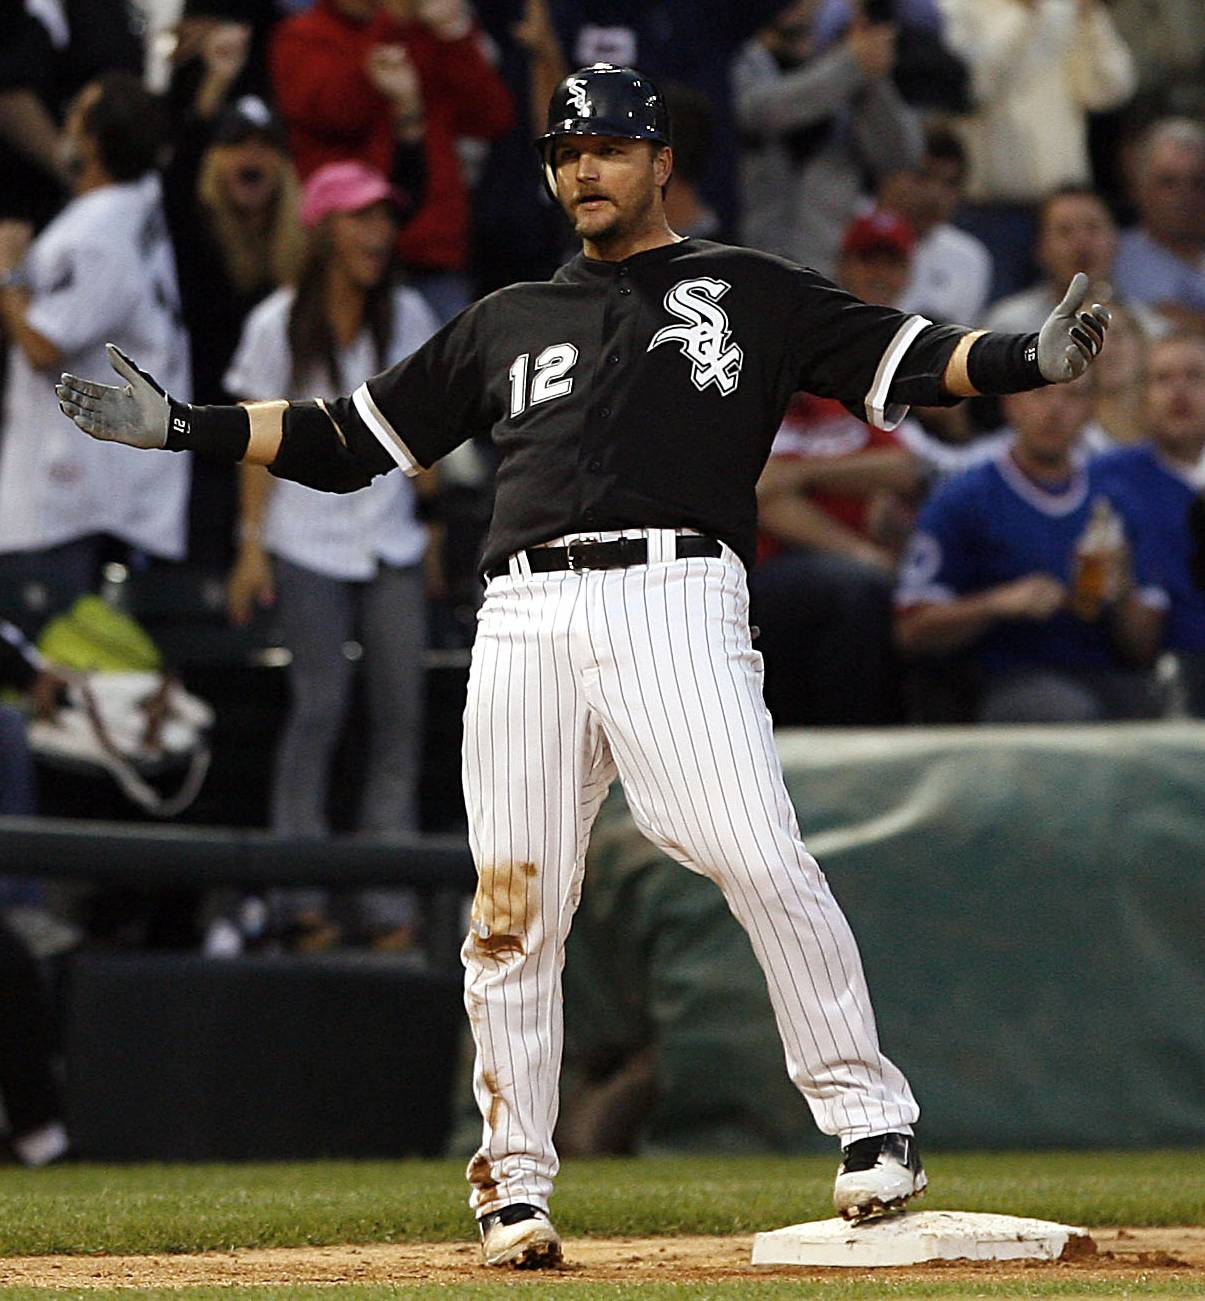 A.J. Pierzynski reacts after hitting a triple in the fourth inning against the Cubs  Wednesday.